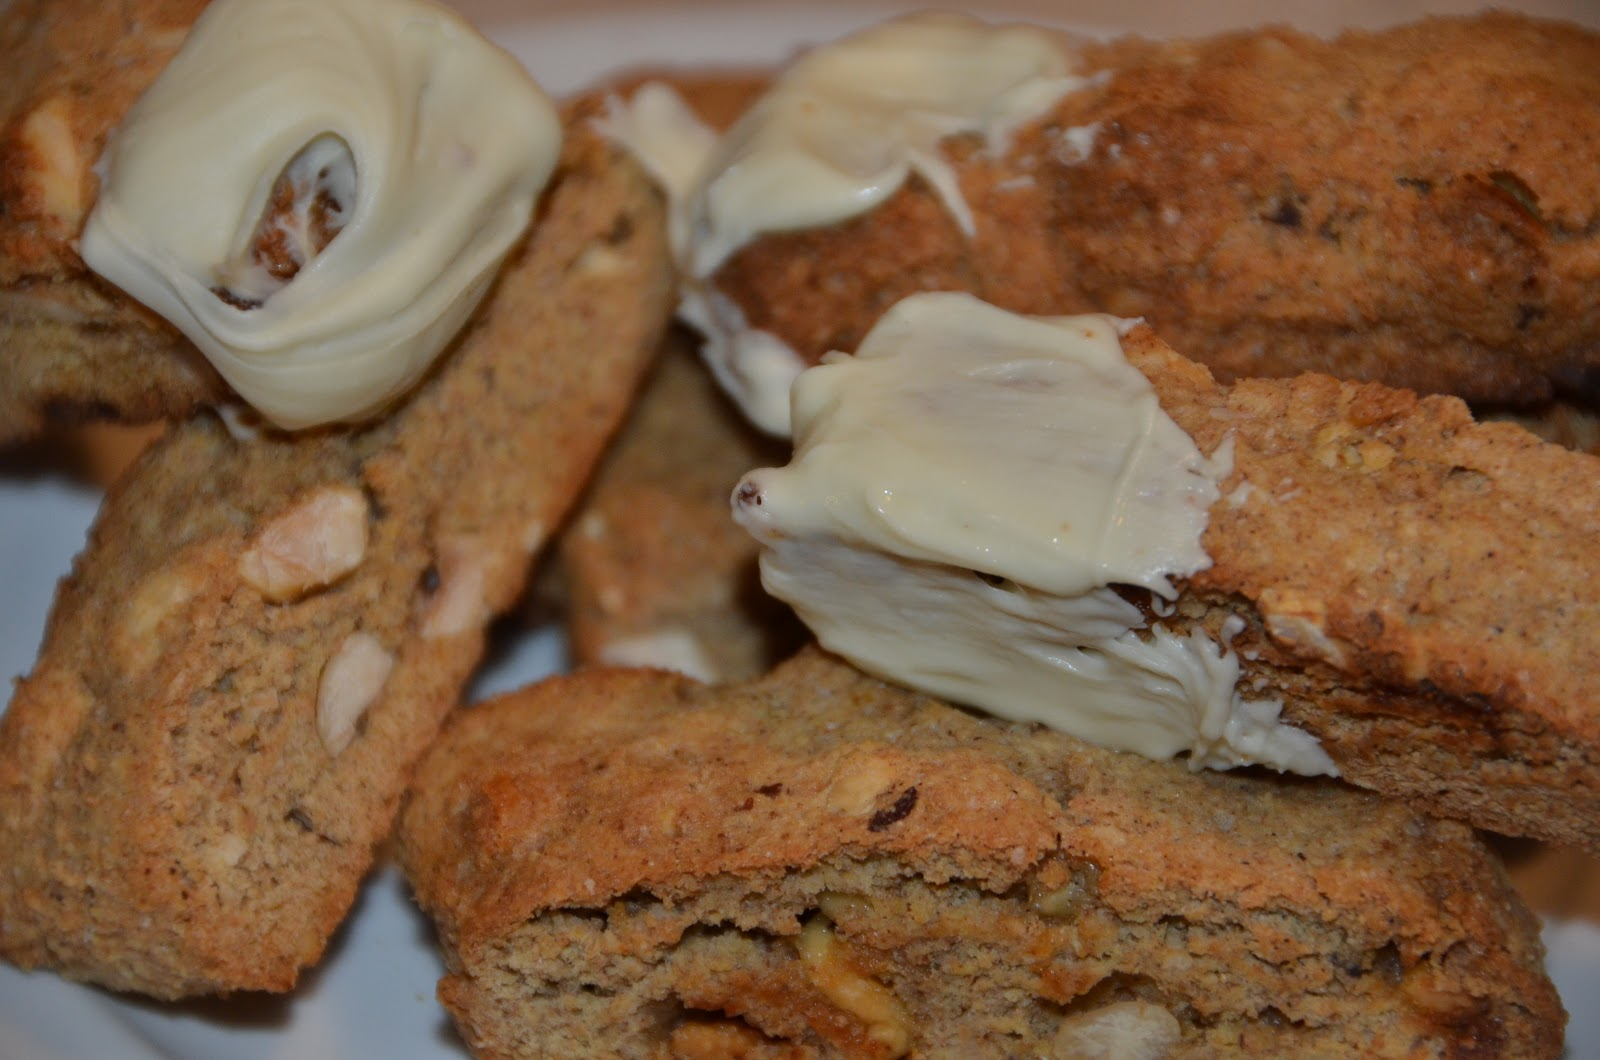 The Martha in Me: Pumpkin Hazelnut White Chocolate Biscotti